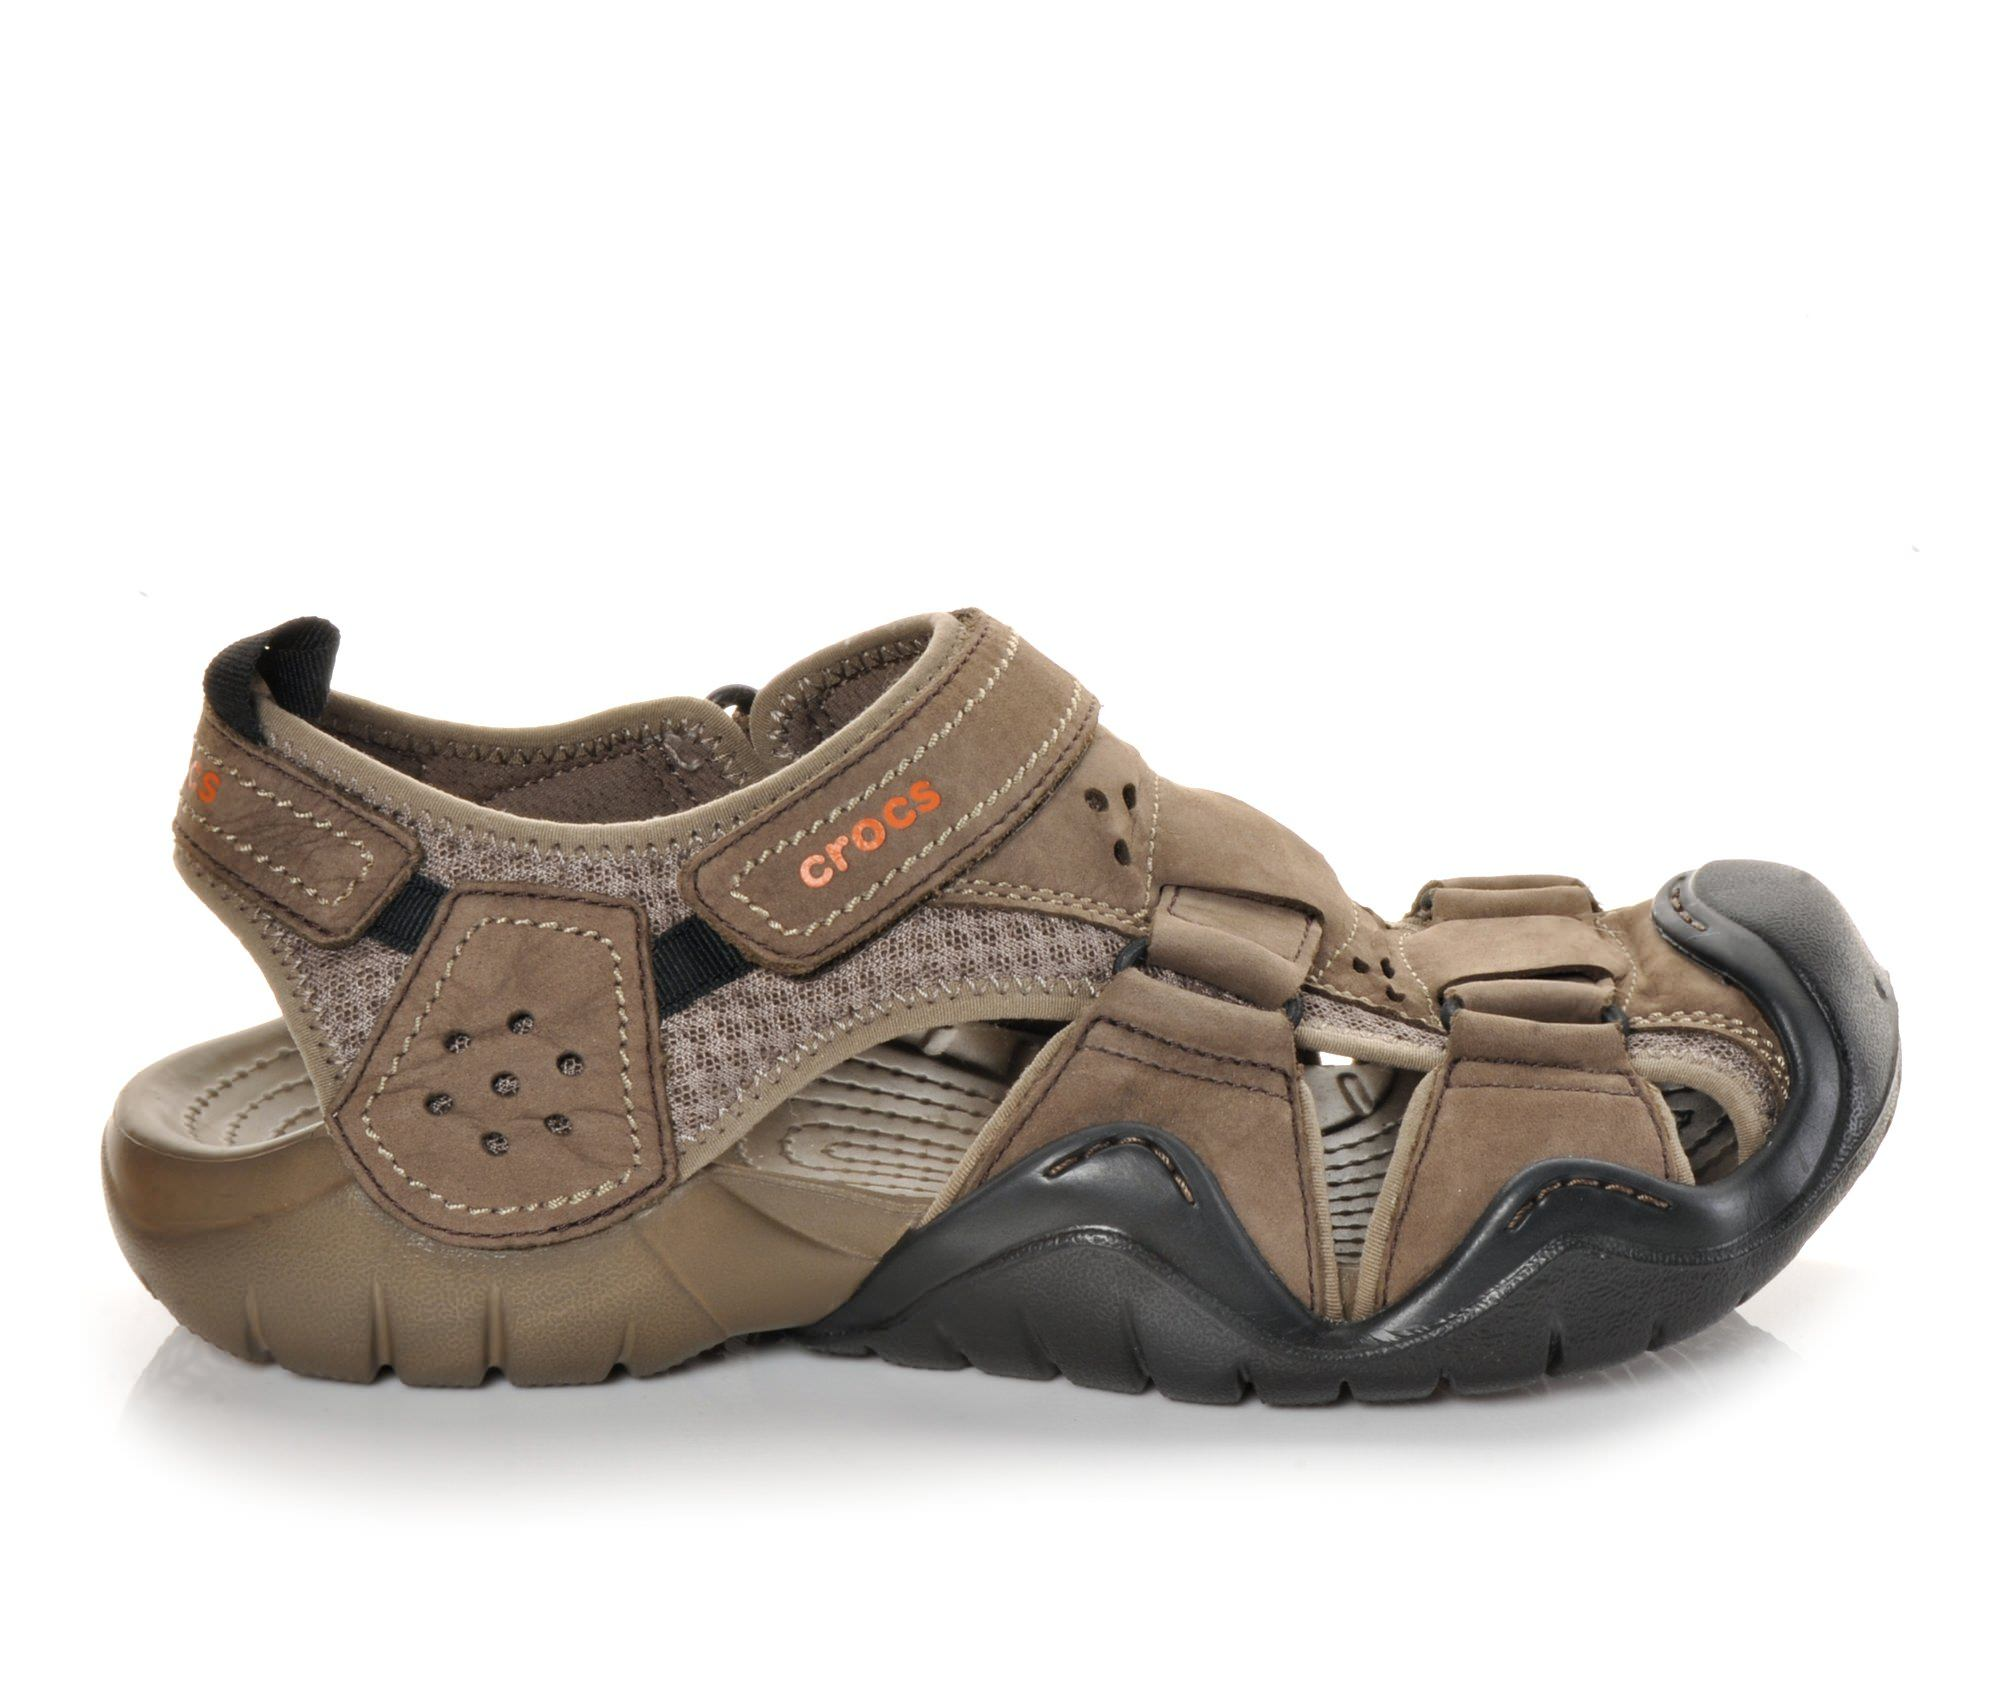 Men's Crocs Swiftwater Leather Fisherman Sandals (Brown)